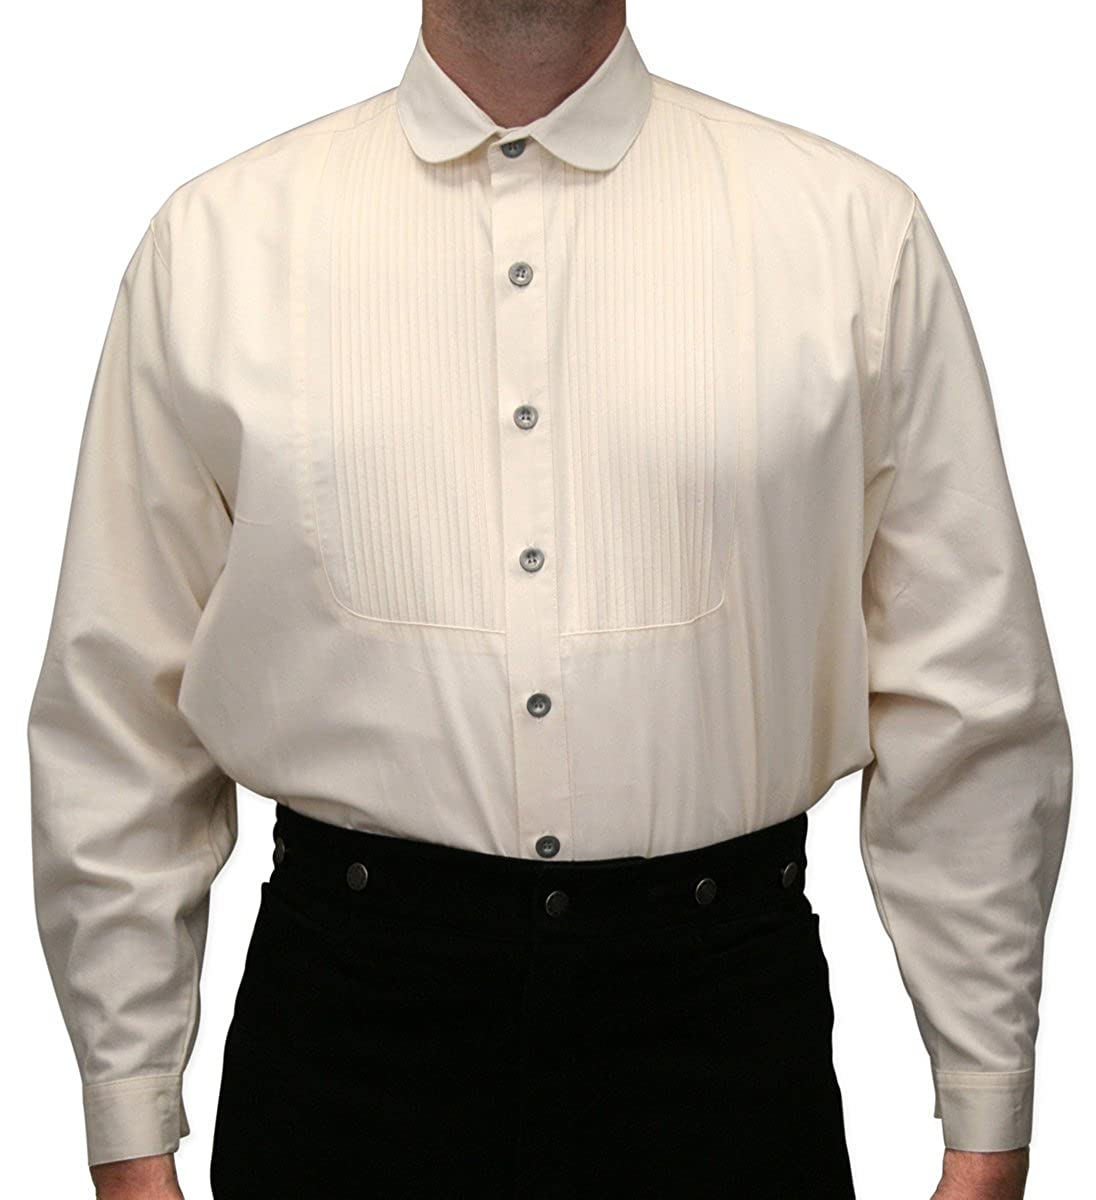 1920s Men's Dress Shirts, Casual Shirts Historical Emporium Mens Pleated Edwardian Round Club Collar Dress Shirt $59.95 AT vintagedancer.com